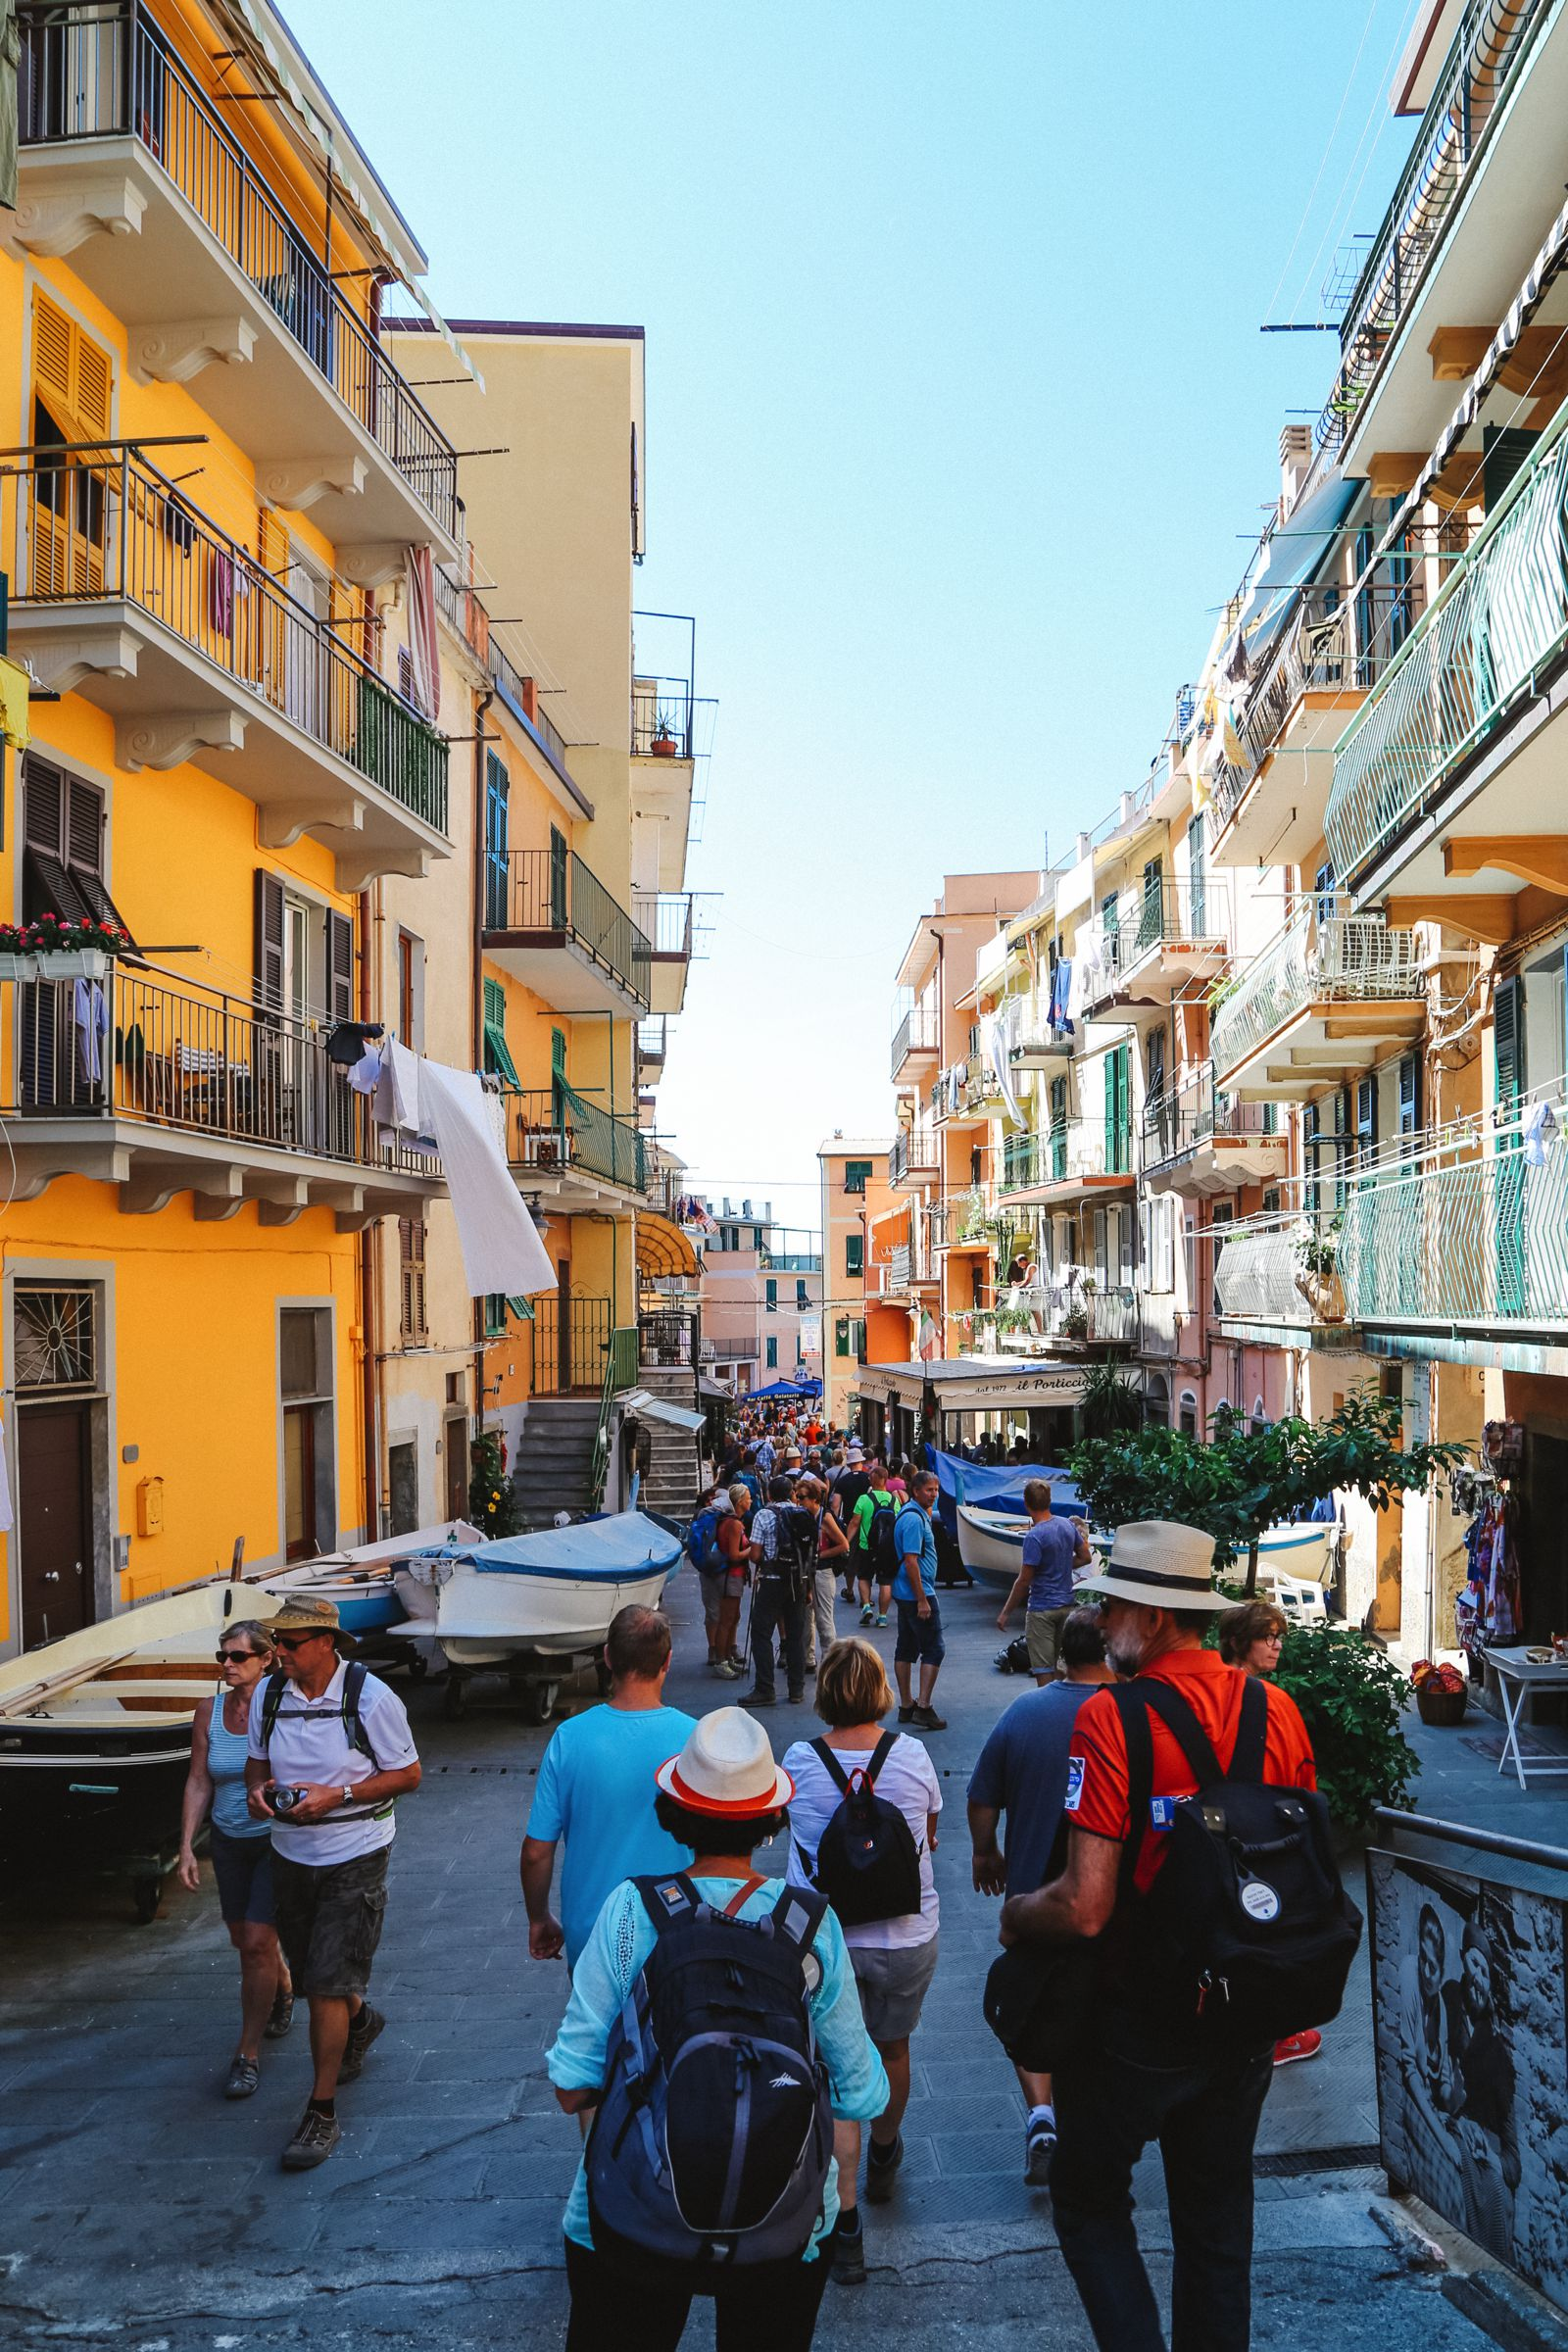 15 Things To Know About Visiting Cinque Terre In Italy (6)